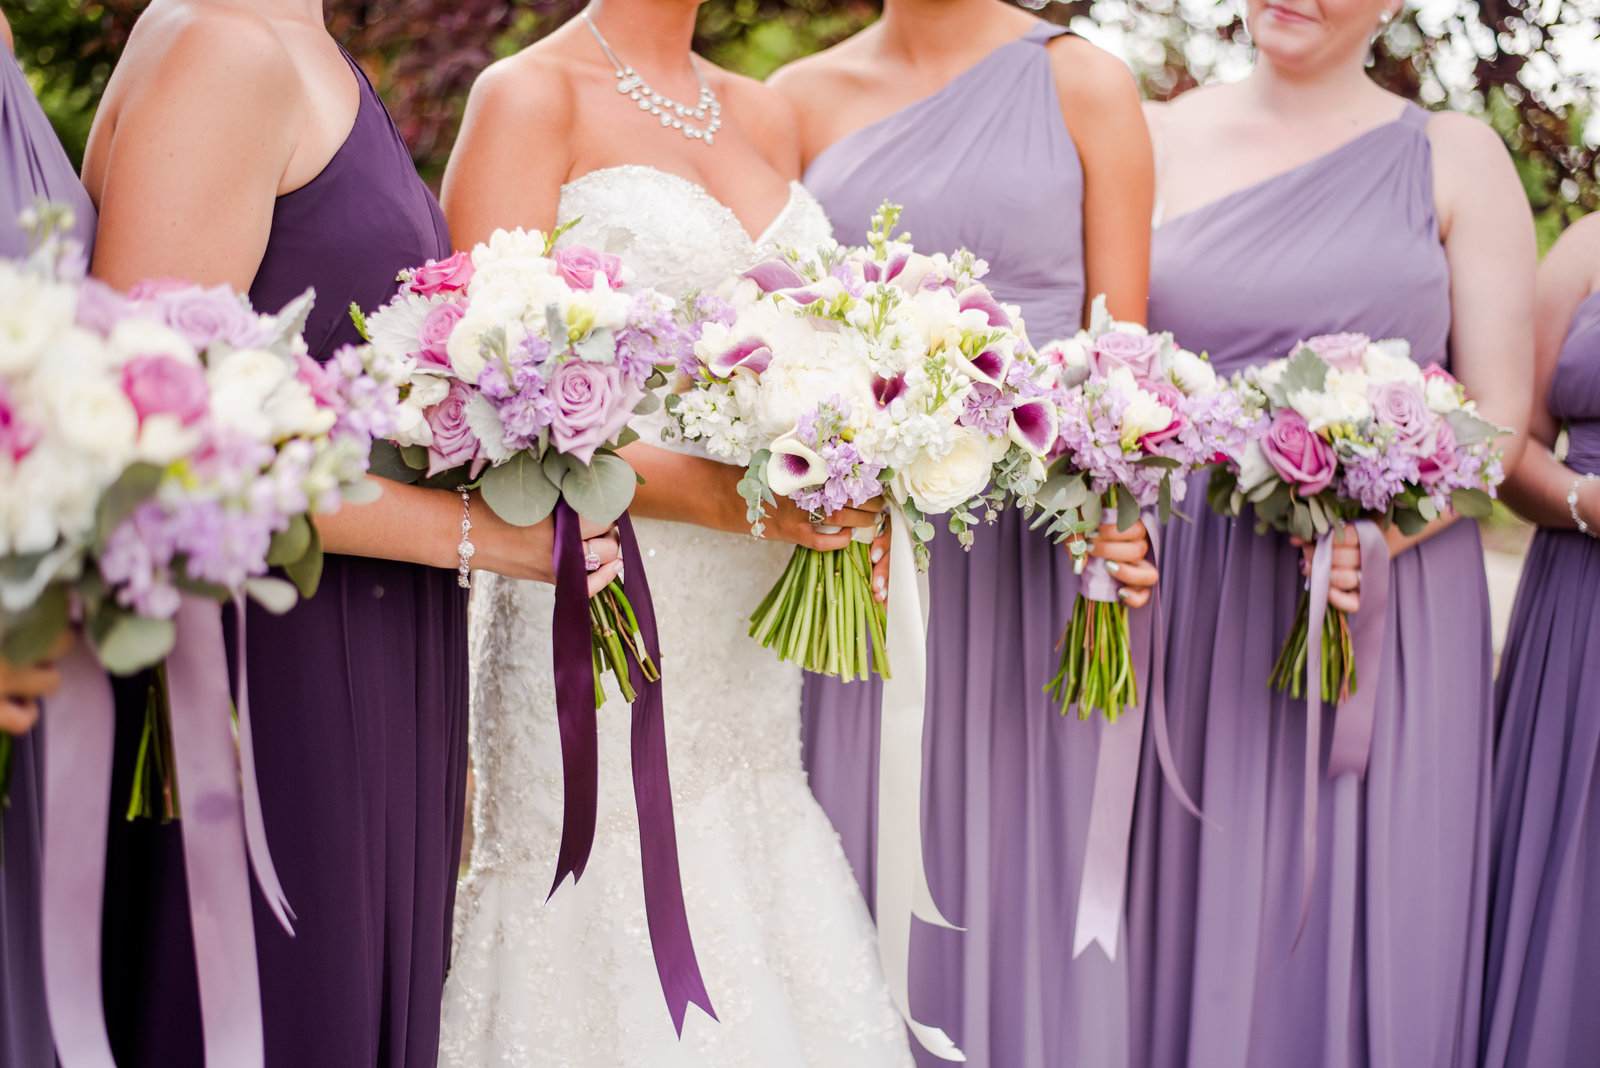 bride-standing-with-her-bridesmaids-holding-their-purple-bouquets